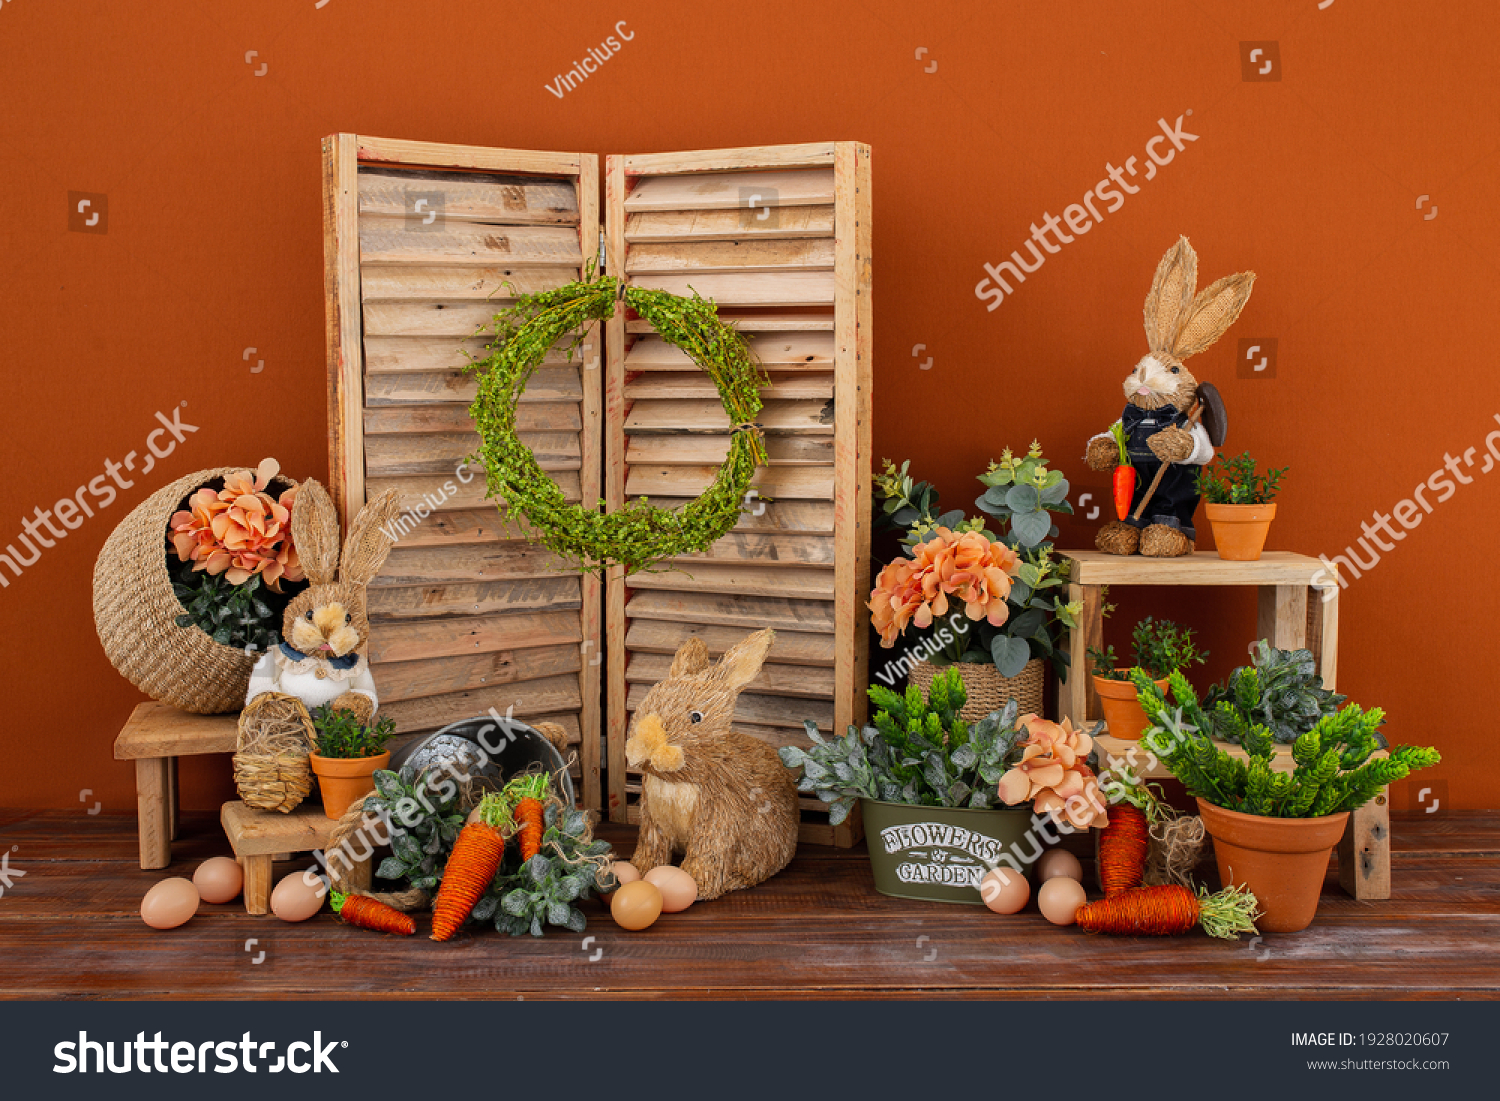 Easter backdrop or background for photo mini session in brown color. Contains straw rabbits. #1928020607